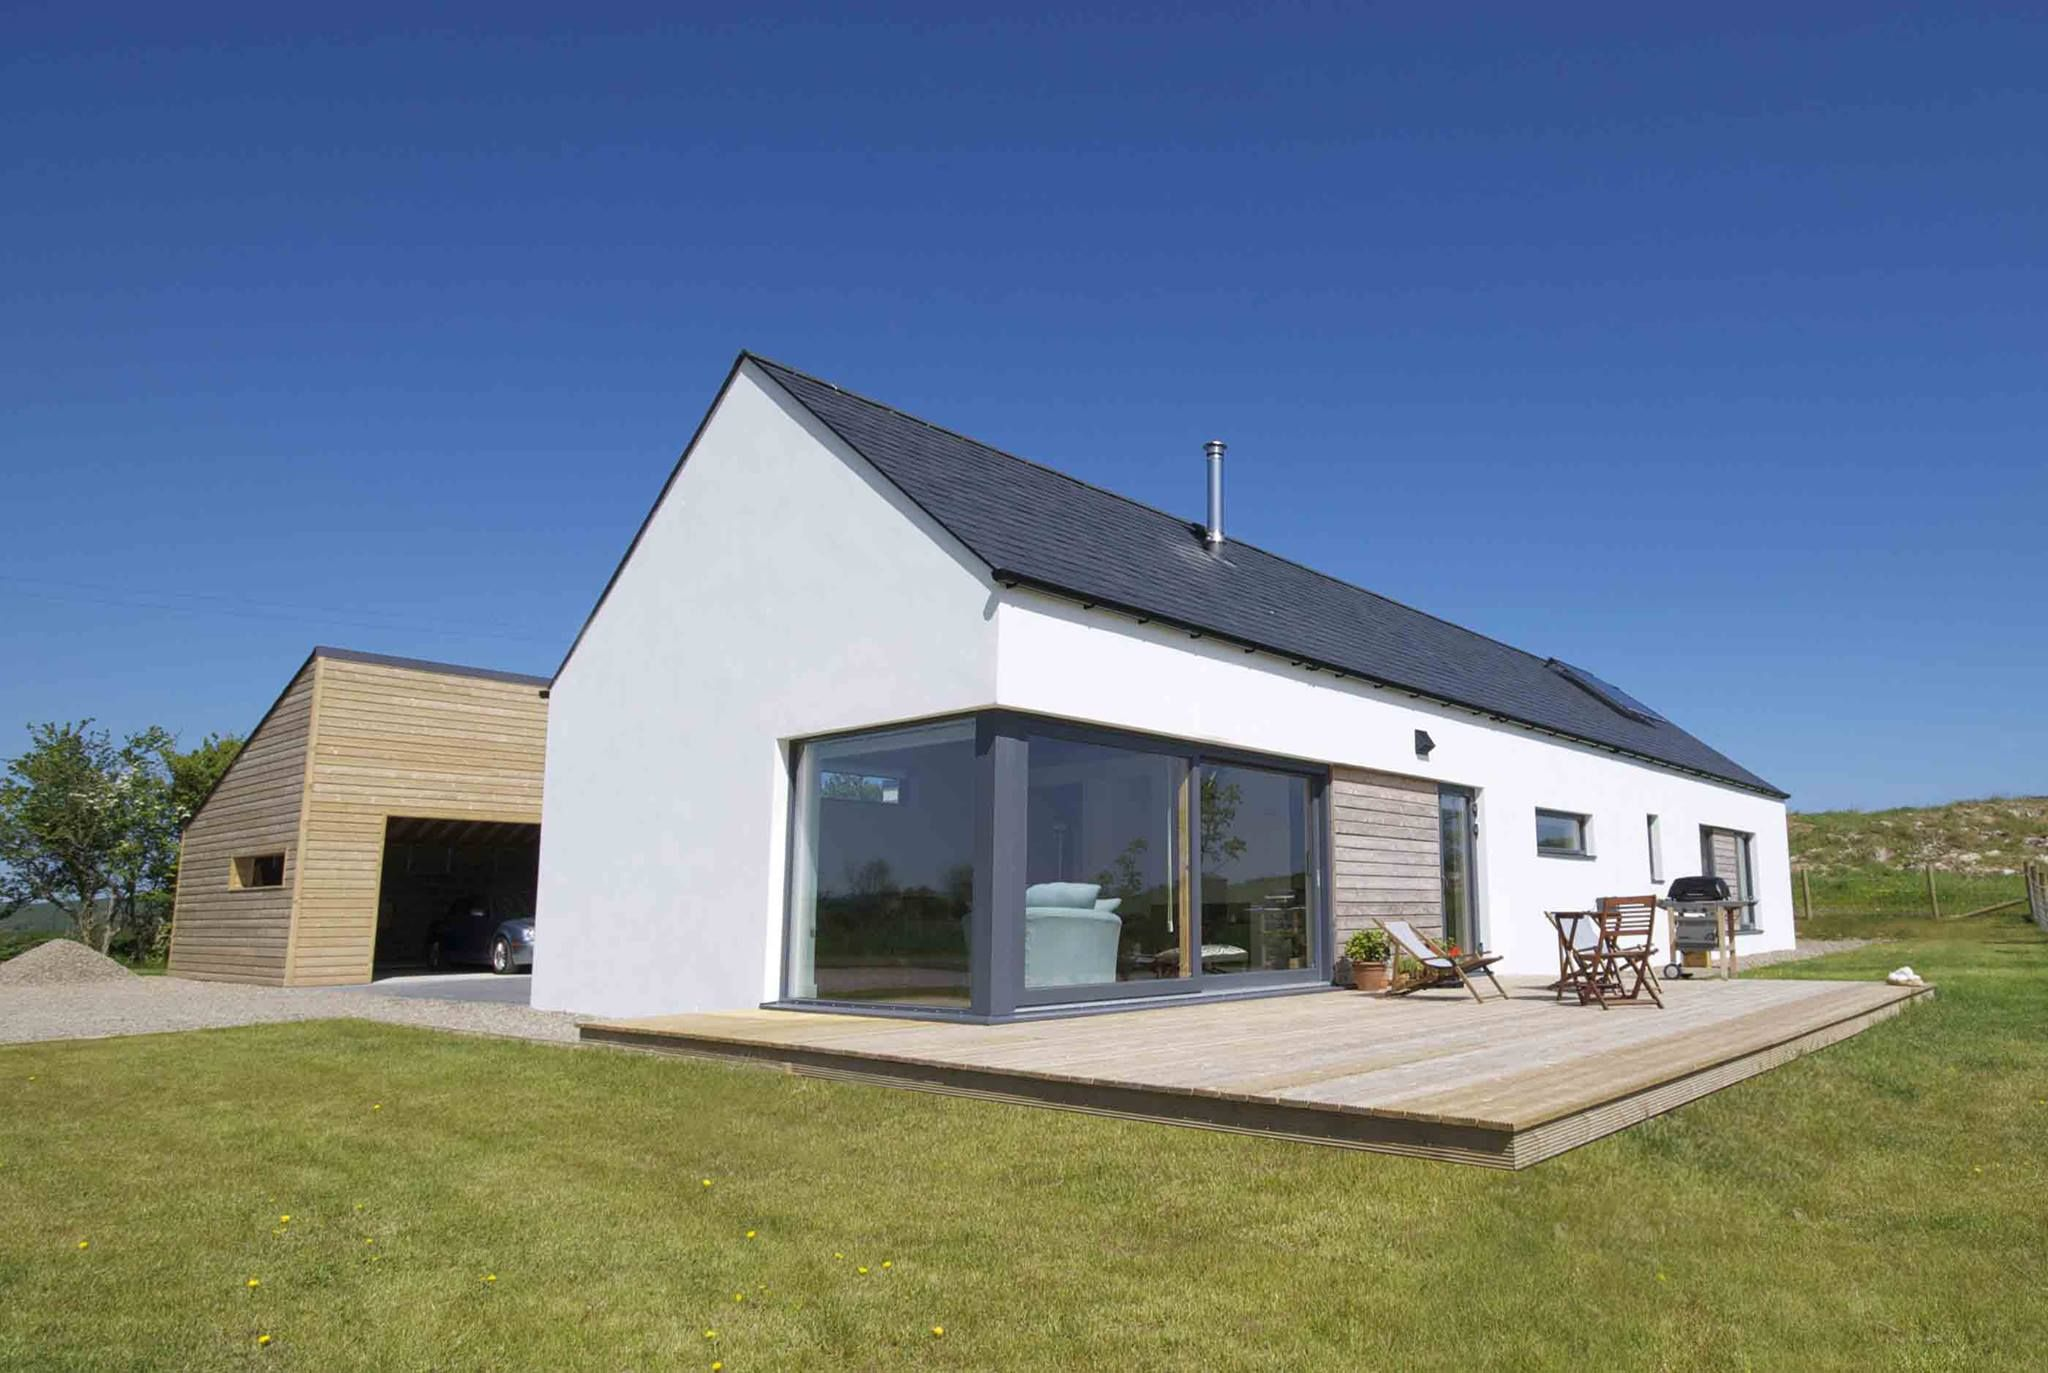 Brittas bay wicklow irish uk rural house designs for Architectural designs farmhouse